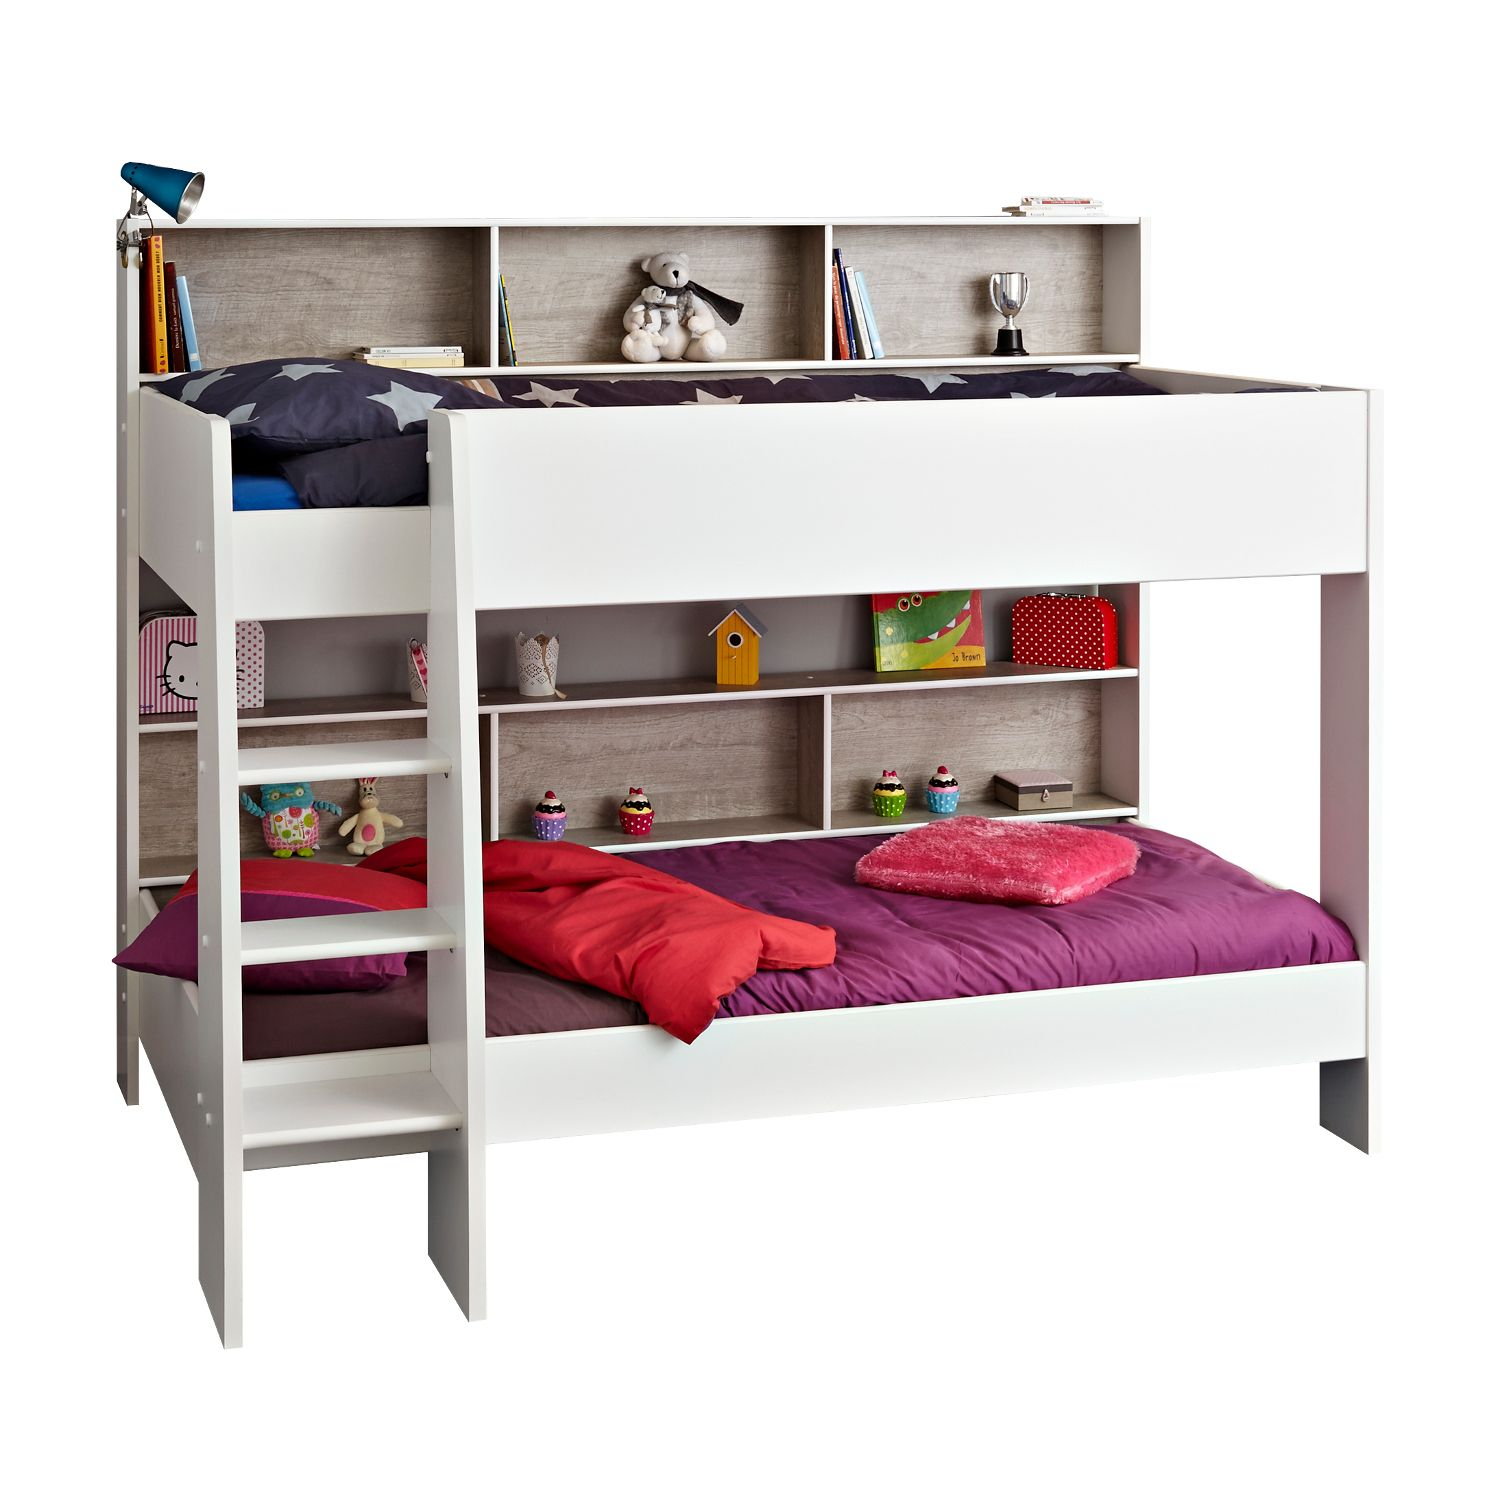 Parisot Taylor Bunk Bed Next Day Delivery Parisot Taylor Bunk Bed - Parisot bedroom furniture